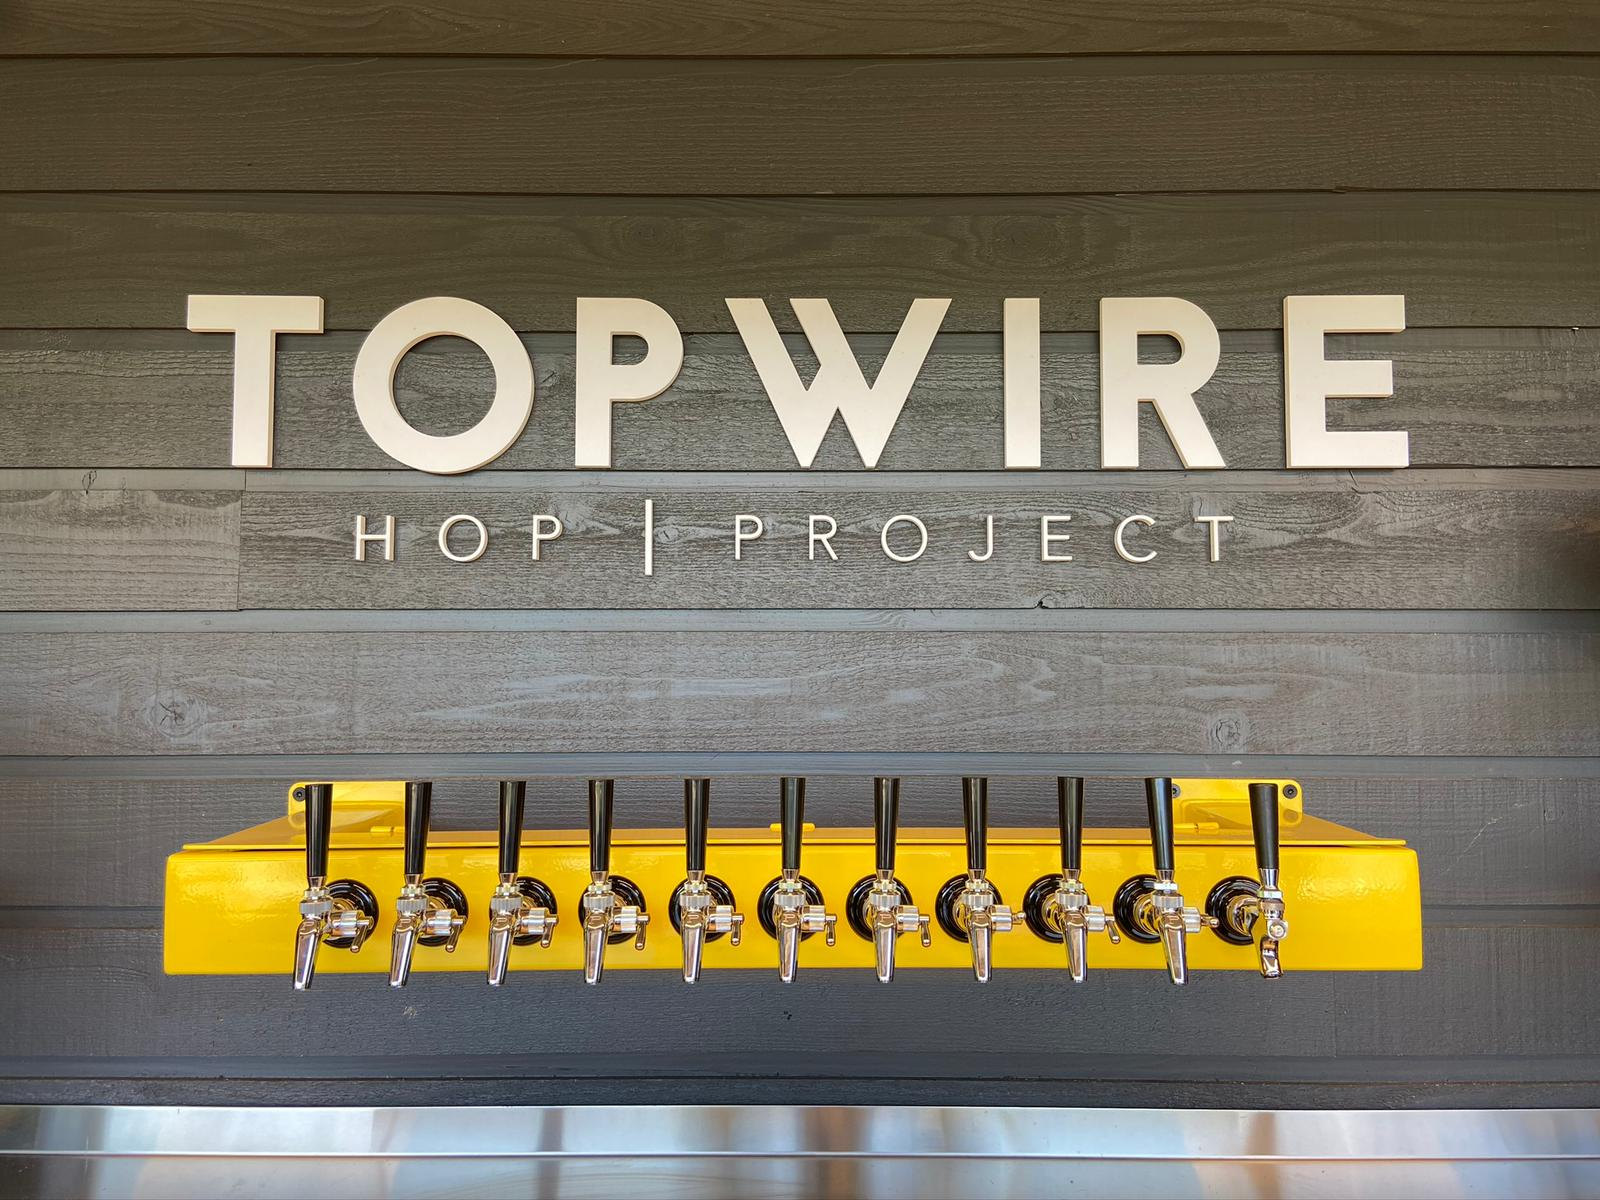 image of draft handles courtesy of TopWire Hop Project